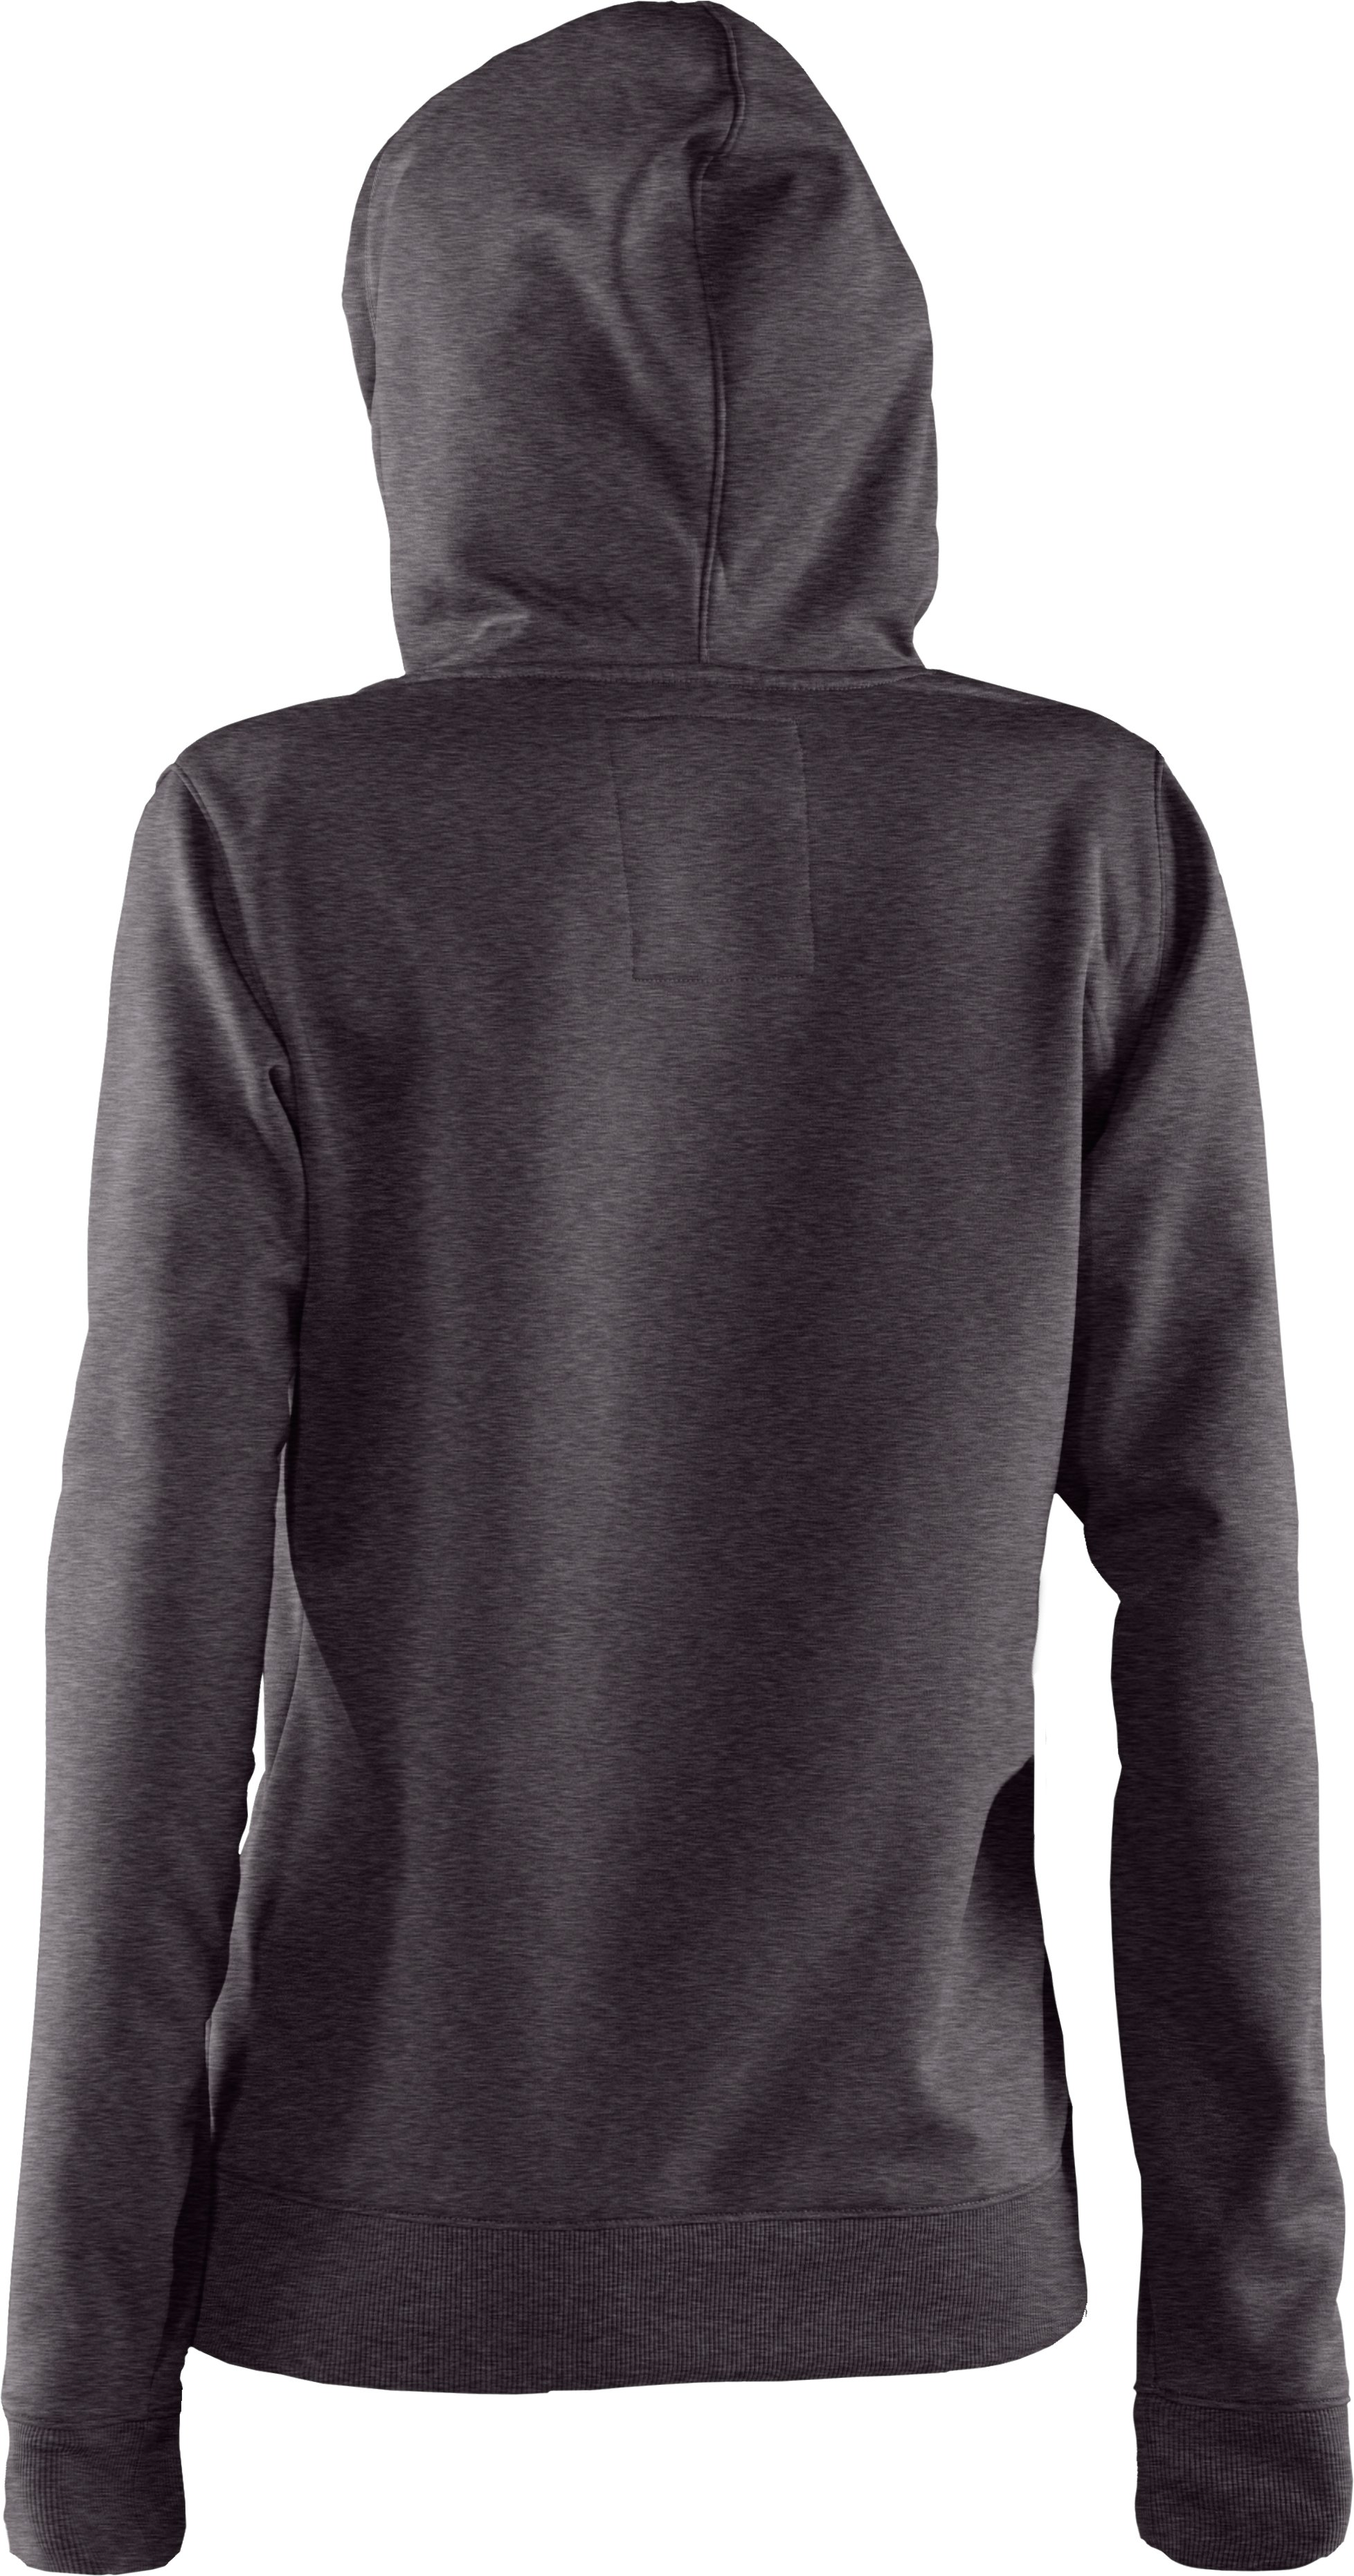 Women's Armour® Fleece Storm Printed Big Logo Hoodie, Carbon Heather, undefined